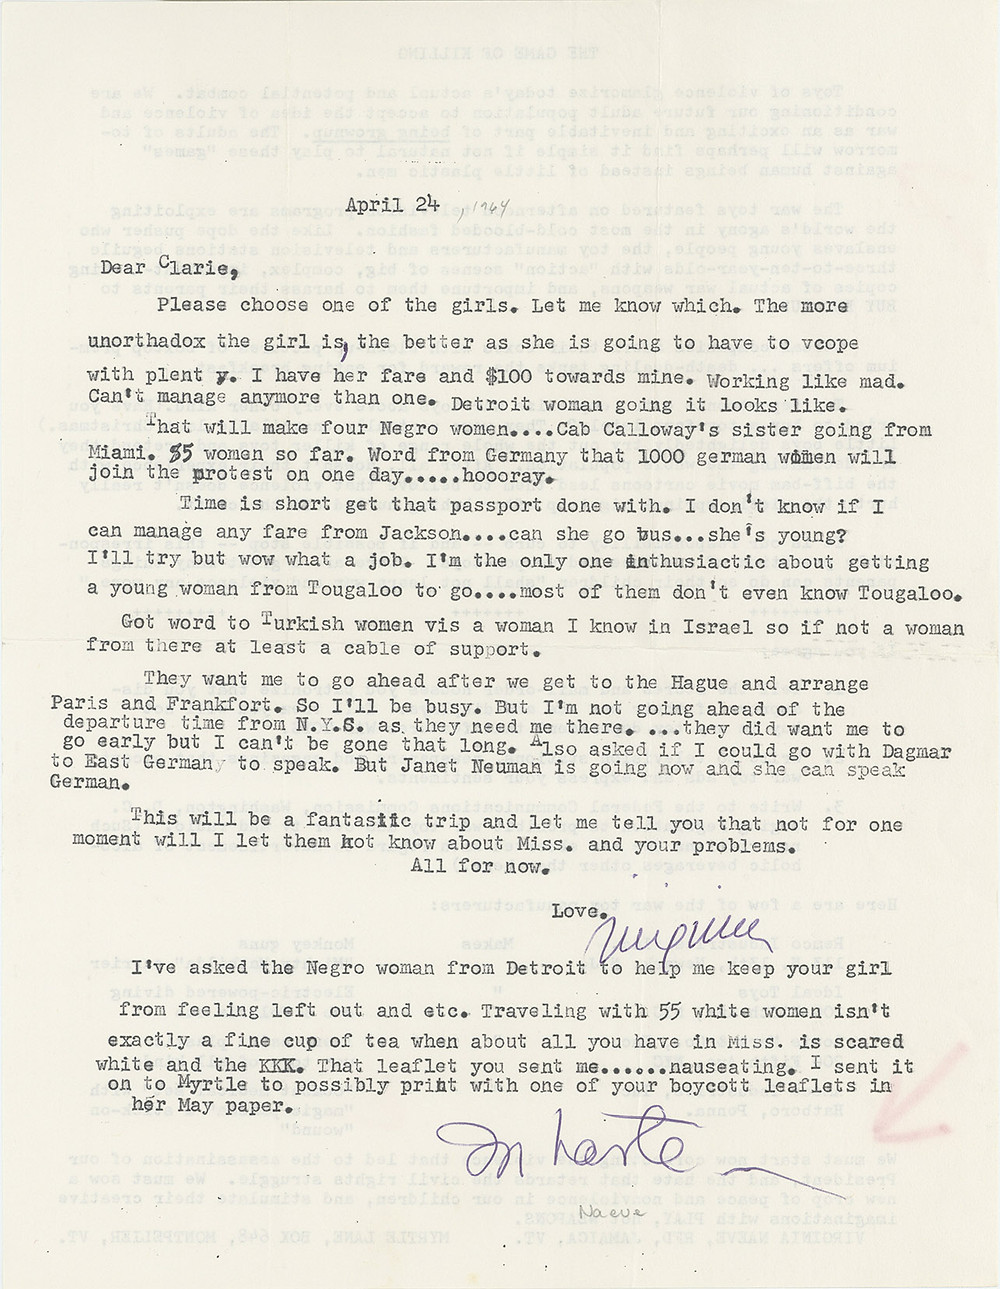 Letter from Virginia Naeve to Clarie Collins Harvey, April 24, 1964